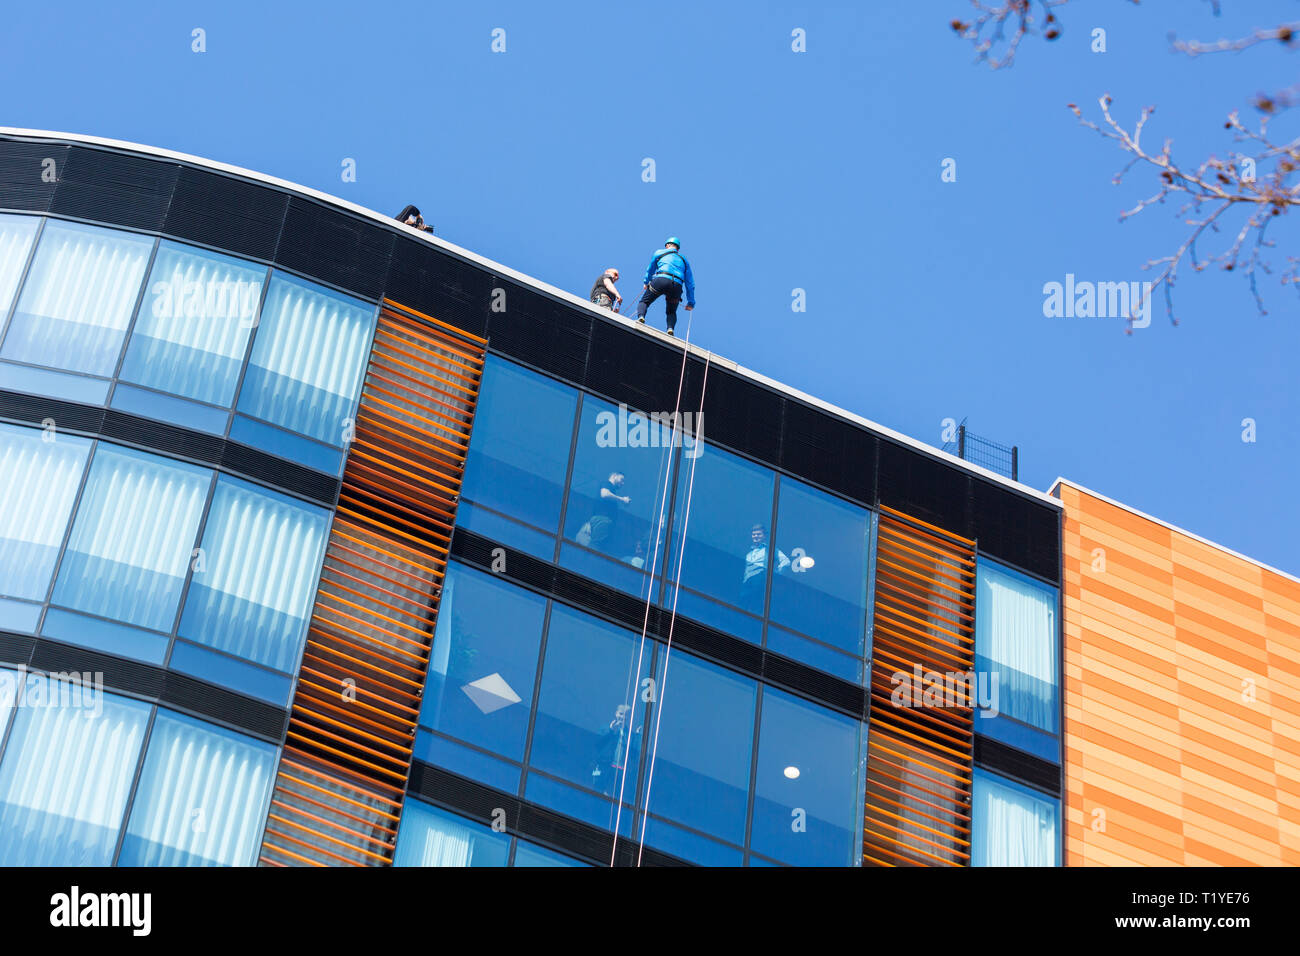 Bournemouth, Dorset, UK. 29th Mar, 2019. Staff working for telecommunications provider 4Com abseil down their new office building at One Lansdowne Plaza in Bournemouth which is 100ft high. They are raising funds for Hope Housing and Hope AOK Rucksack Appeal who provide support to homeless in Bournemouth. A lovely warm sunny day for the descent!  Man at the top getting ready to abseil down while friends and colleagues look out. Credit: Carolyn Jenkins/Alamy Live News - Stock Image